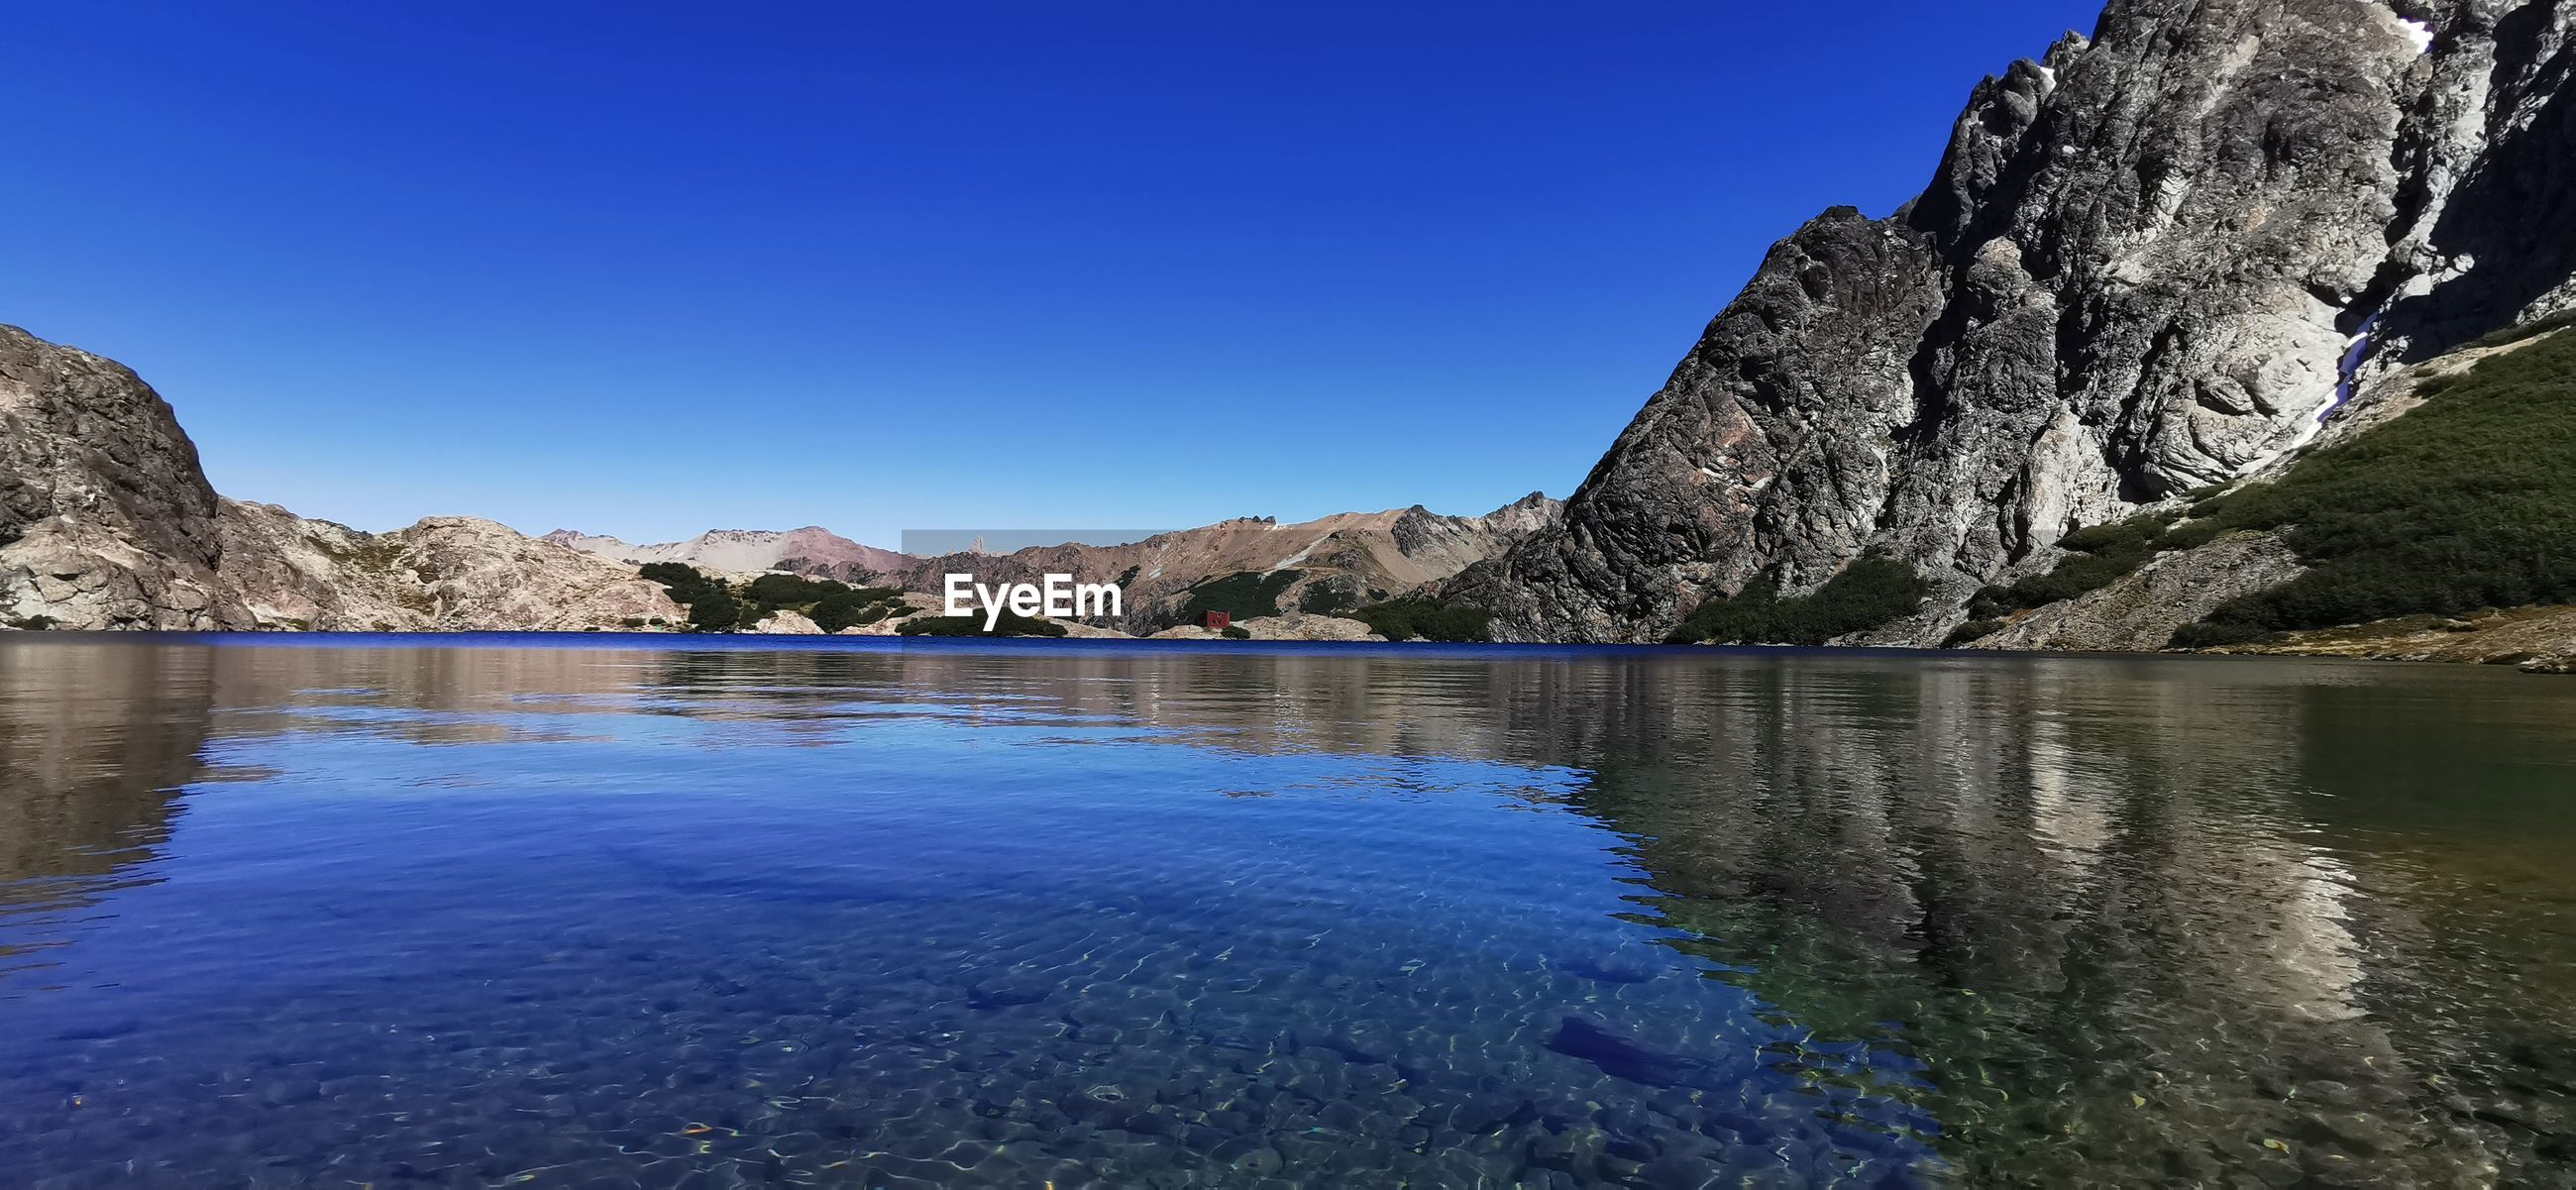 SCENIC VIEW OF LAKE AND ROCK FORMATION AGAINST CLEAR BLUE SKY